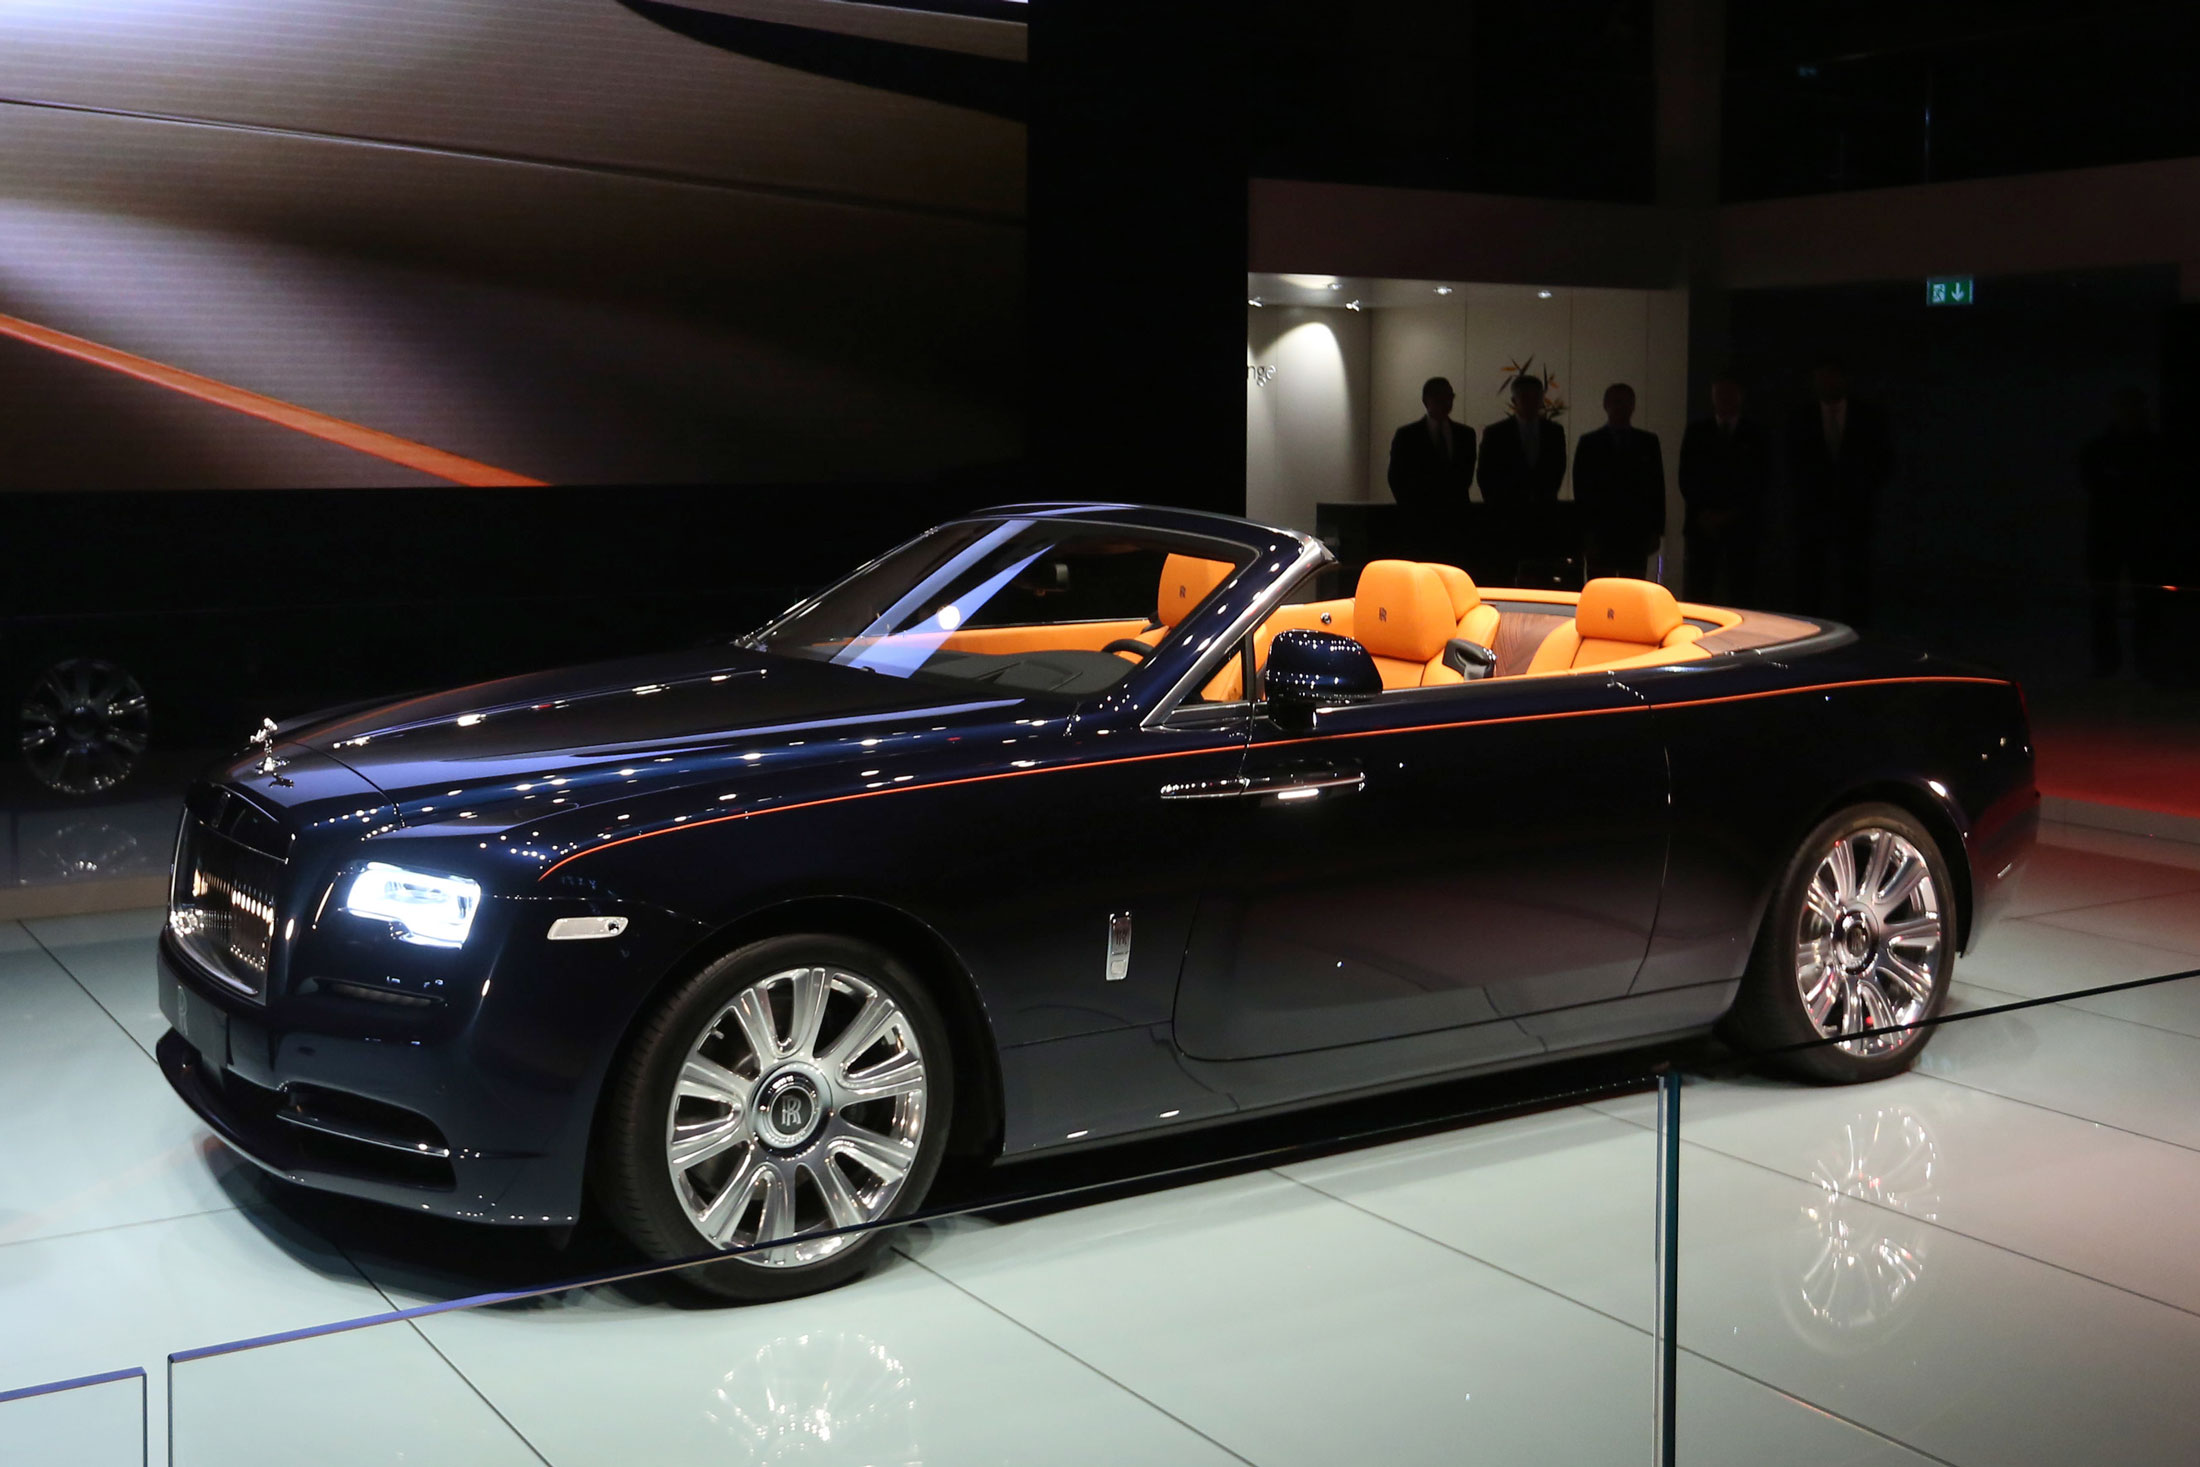 The Rolls-Royce Dawn at Frankfurt.